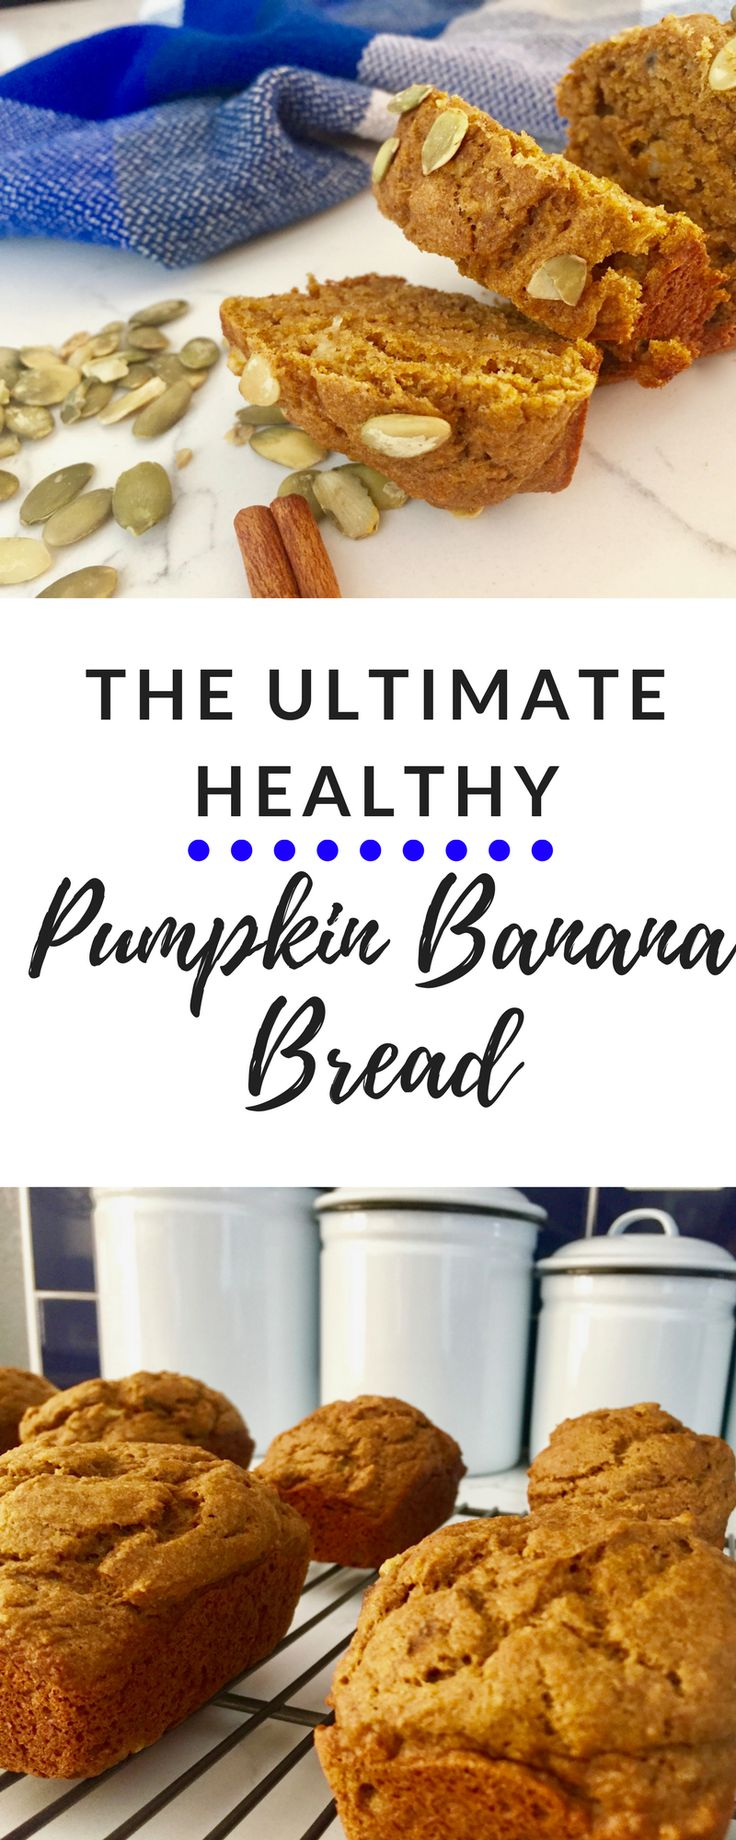 The ultimate healthy pumpkin banana bread. Low in sugar and no oil. Whole wheat flour. All of the delicious without the calories!